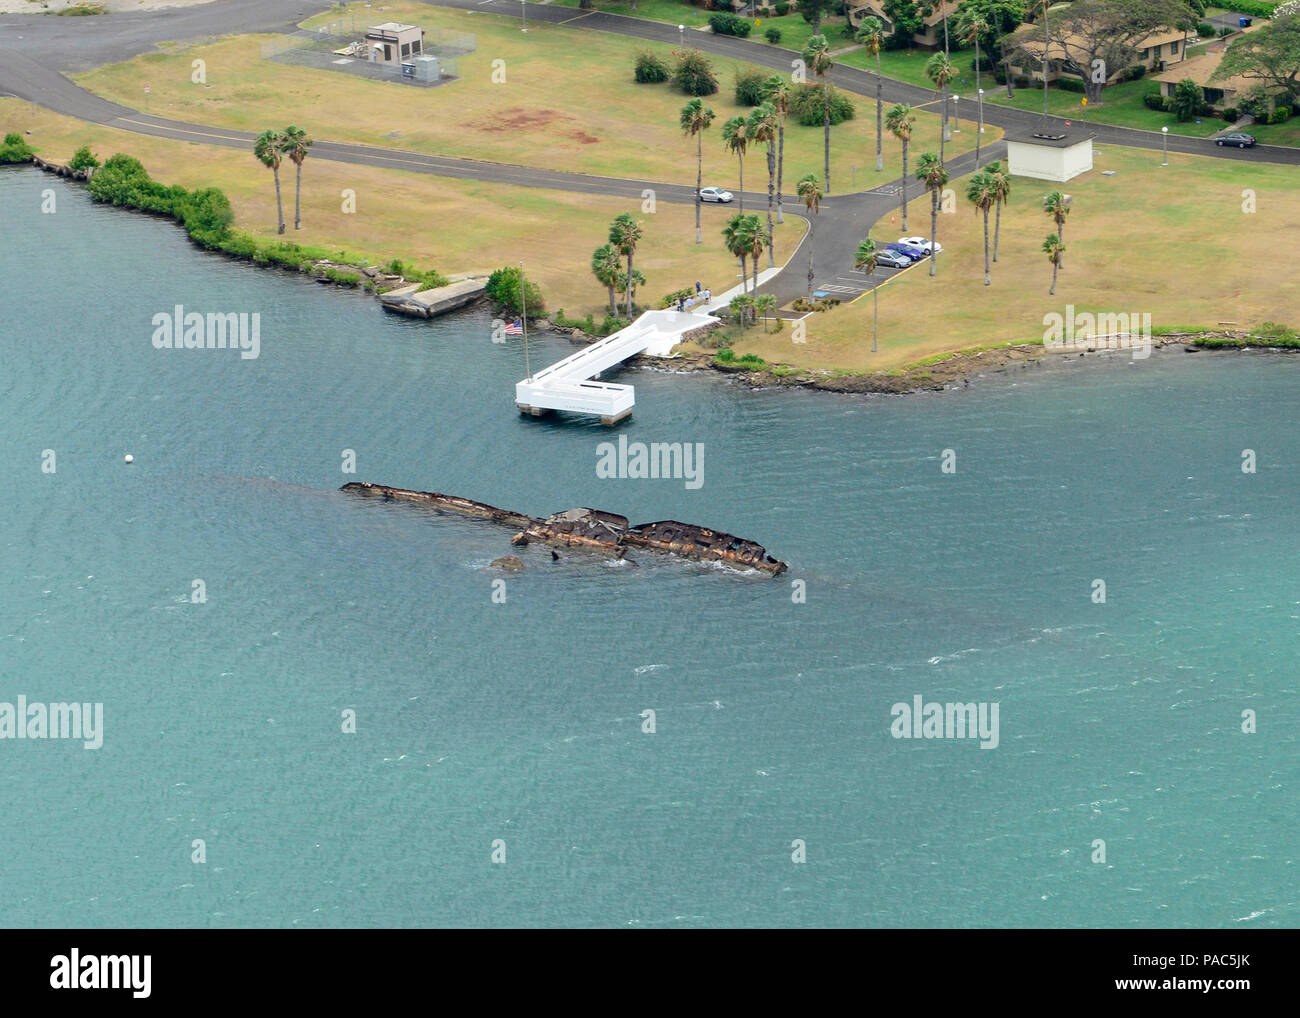 160308-N-DT805-035 PEARL HARBOR (March 8, 2016) This is an